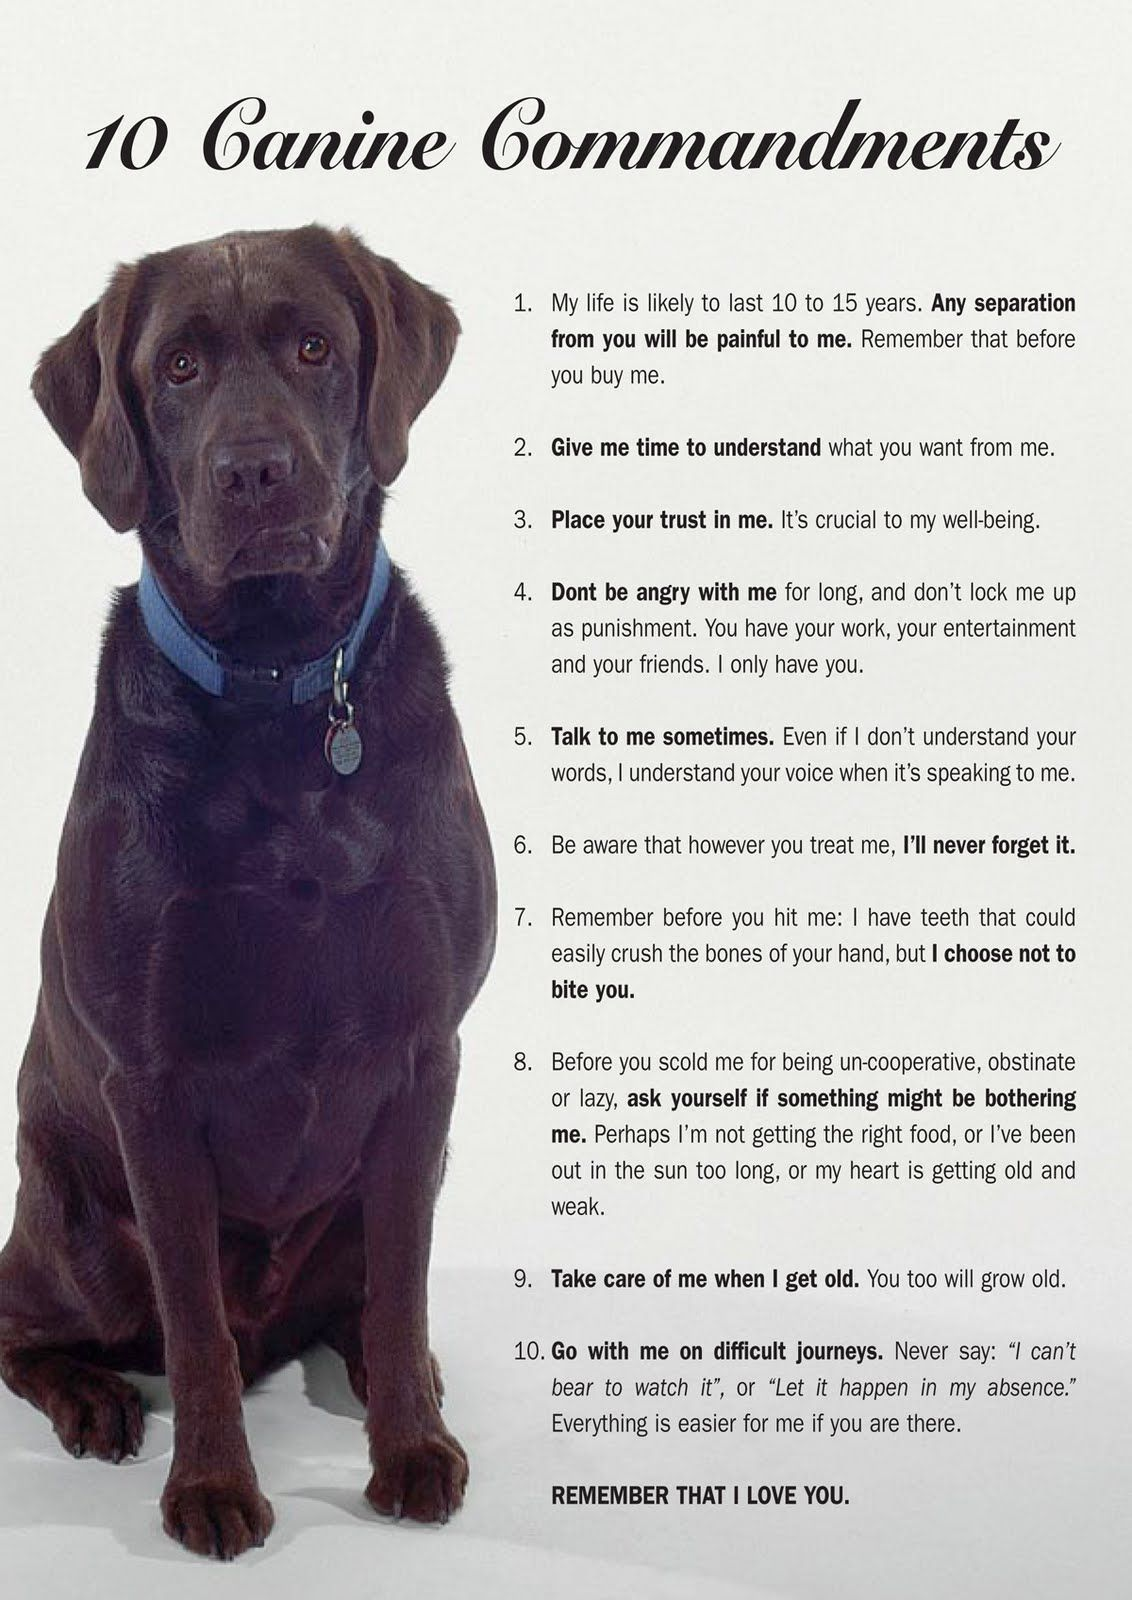 Canine commandments i literally started crying at number